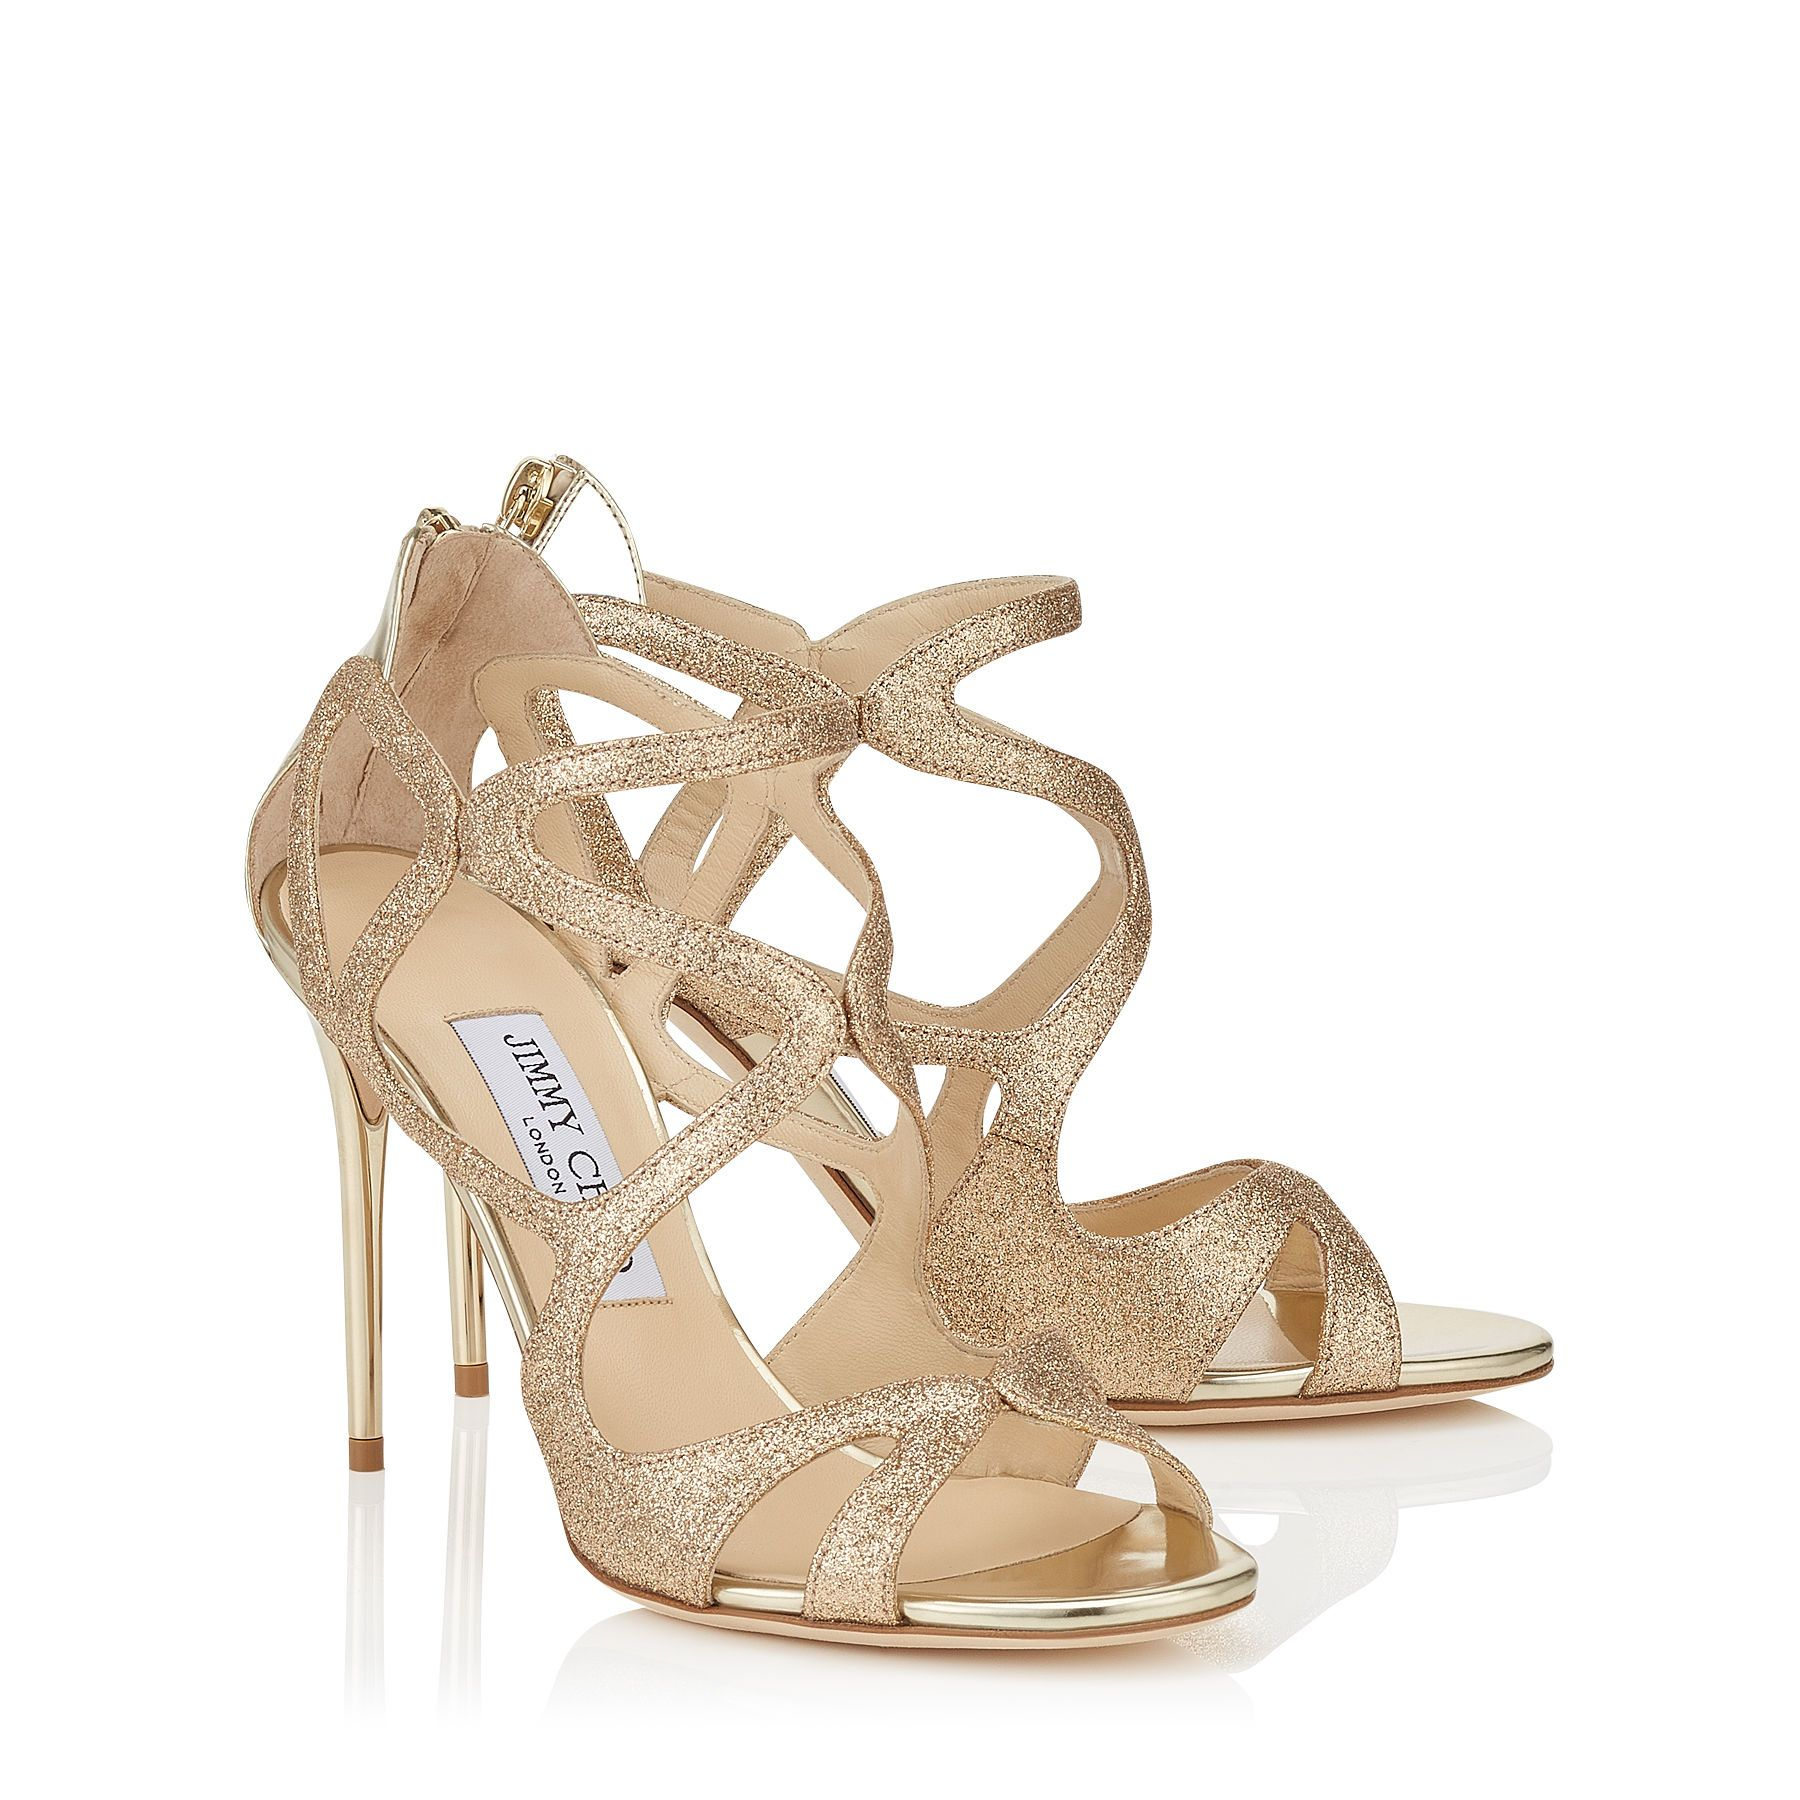 b46243c156 LESLIE 100, Sand Fine Glitter Fabric and Champagne Mirror Leather Strappy  Sandals. JIMMY CHOO.